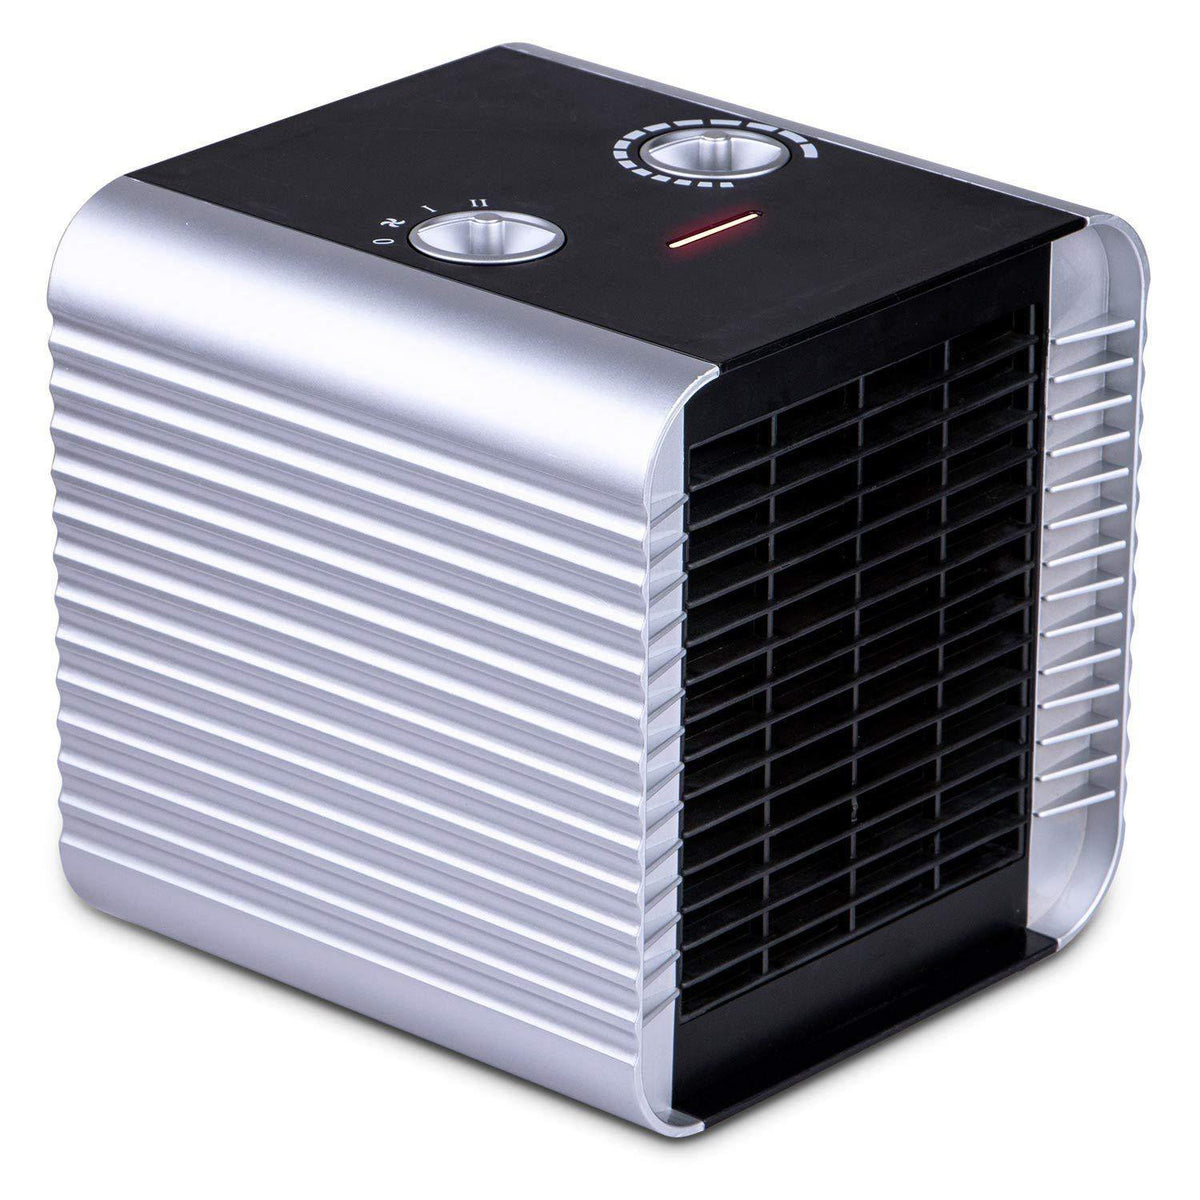 Quiet Ceramic Space Heater with Adjustable Thermostat